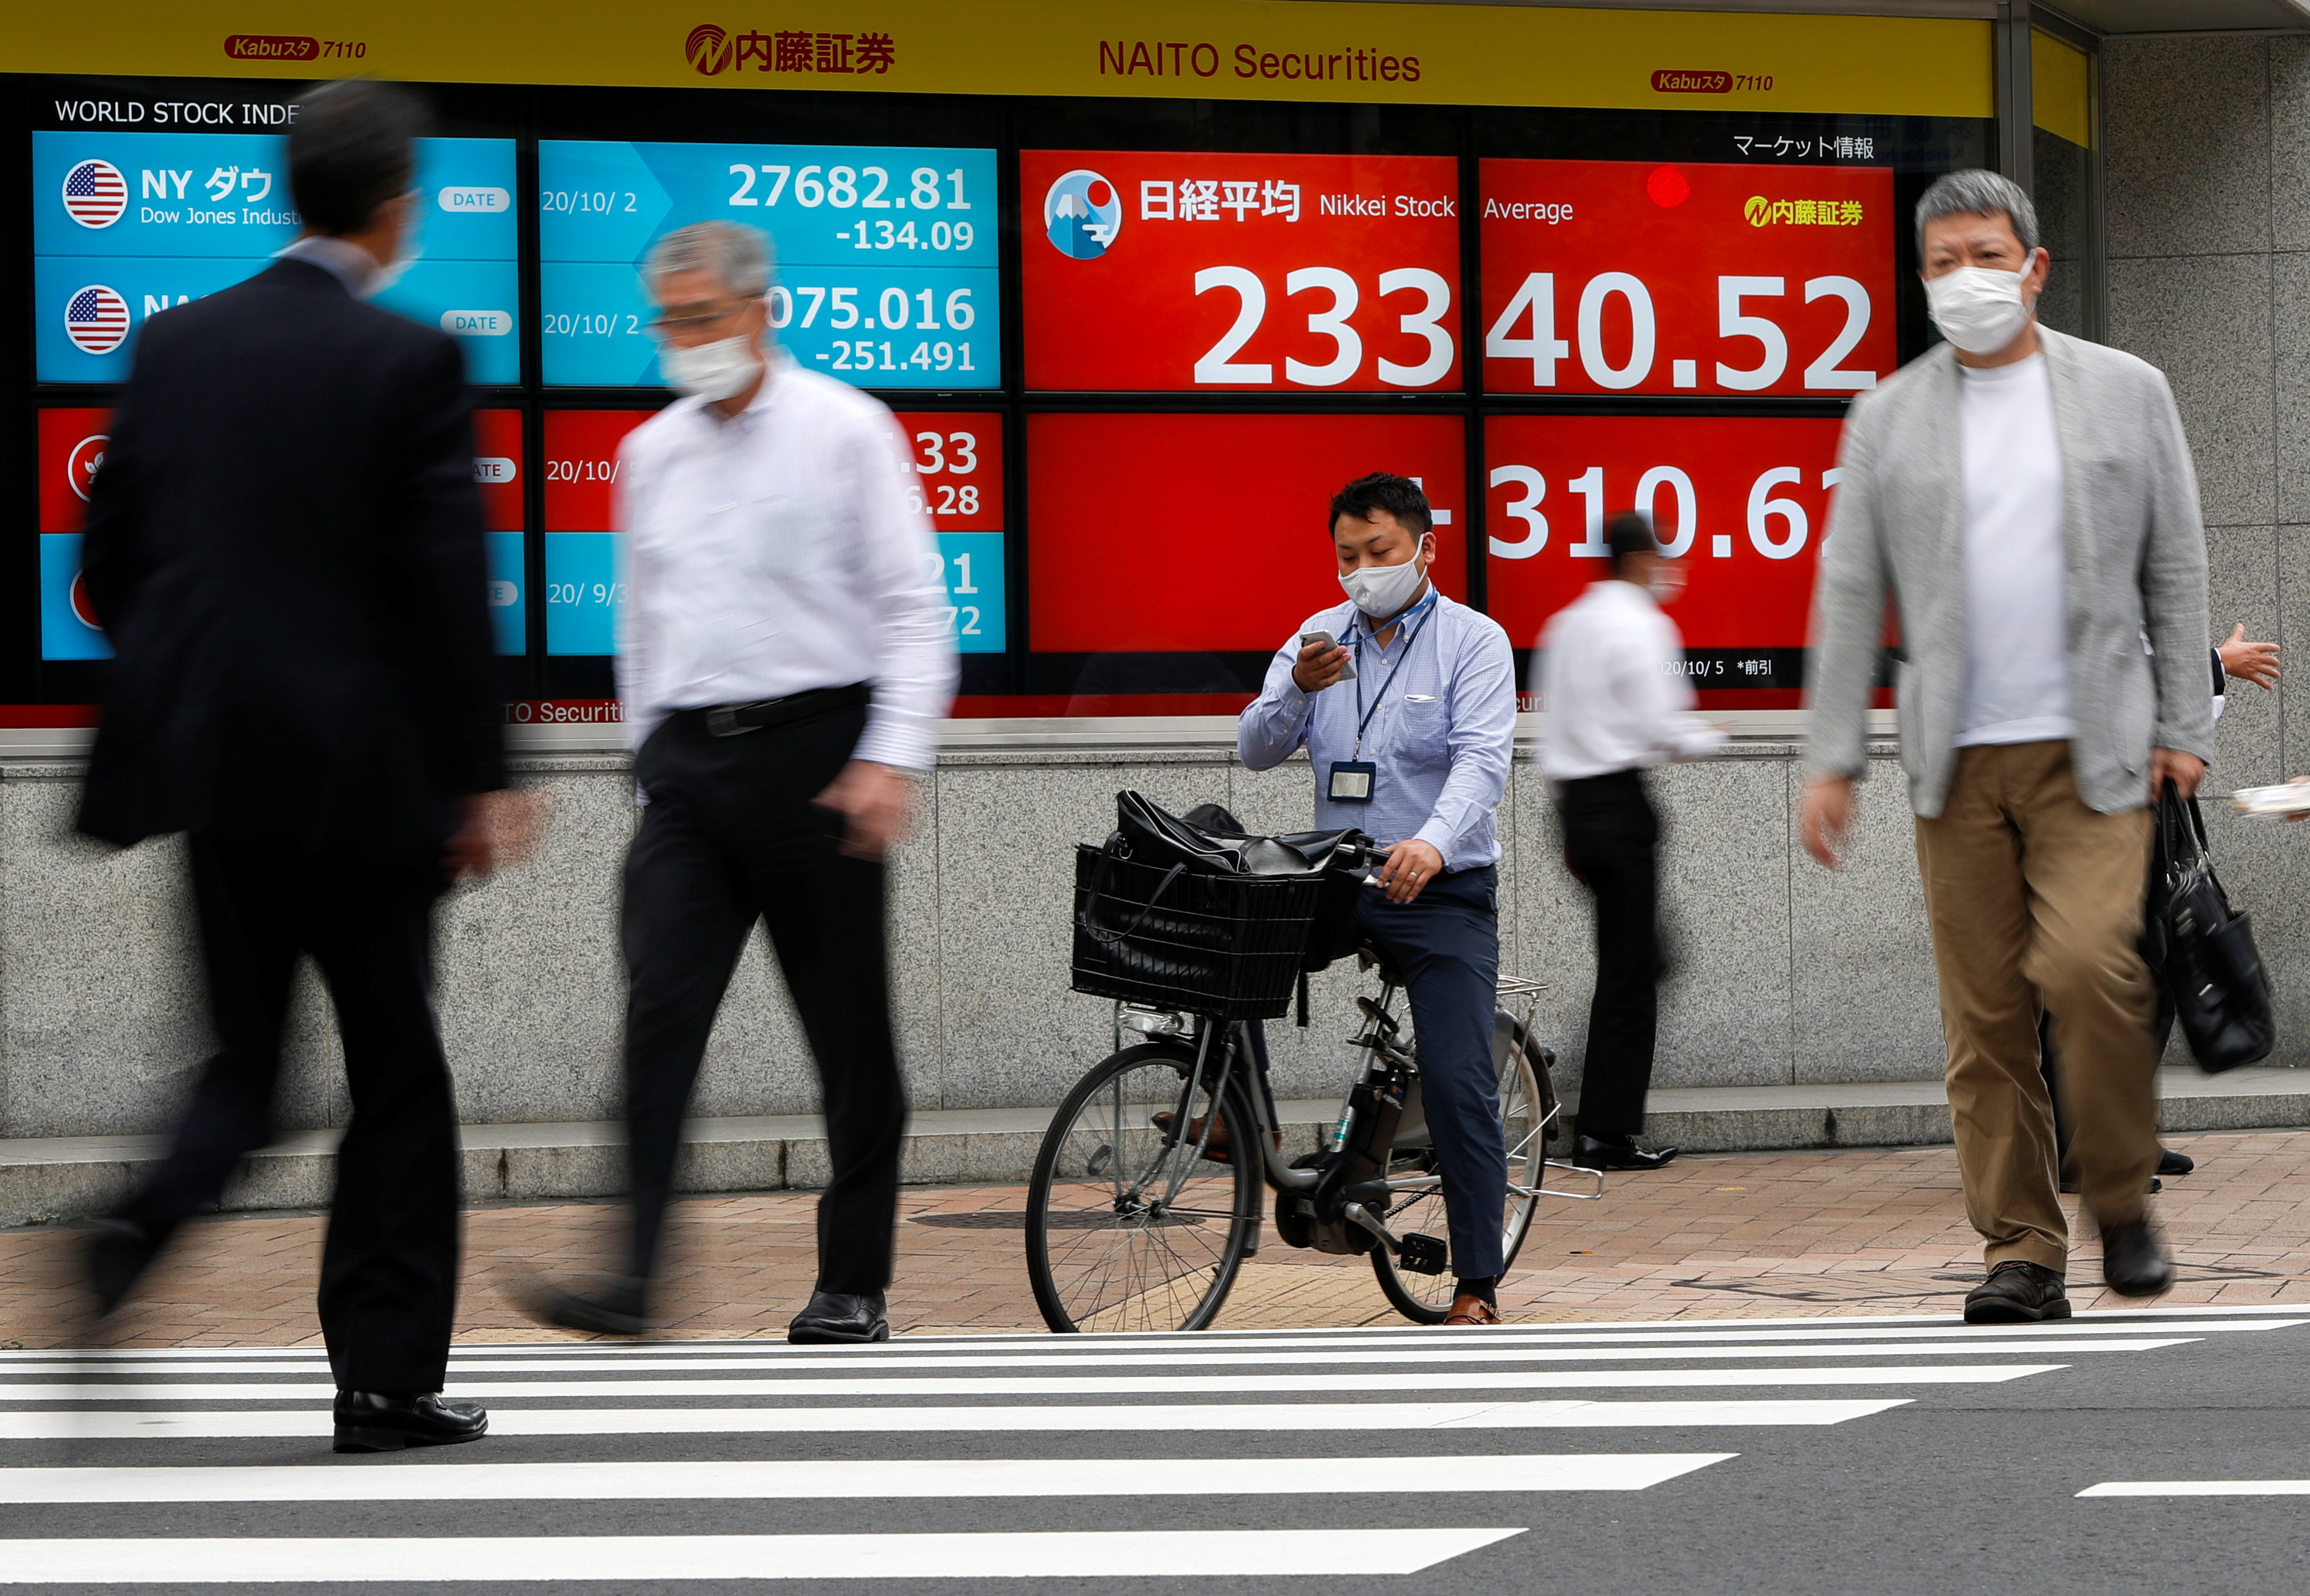 Passersby wearing protective face masks walk past a screen displaying Nikkei share average and world stock indexes outside a brokerage, amid the coronavirus disease (COVID-19) outbreak, in Tokyo, Japan October 5, 2020. Picture taken with slow shutter speed. REUTERS/Issei Kato